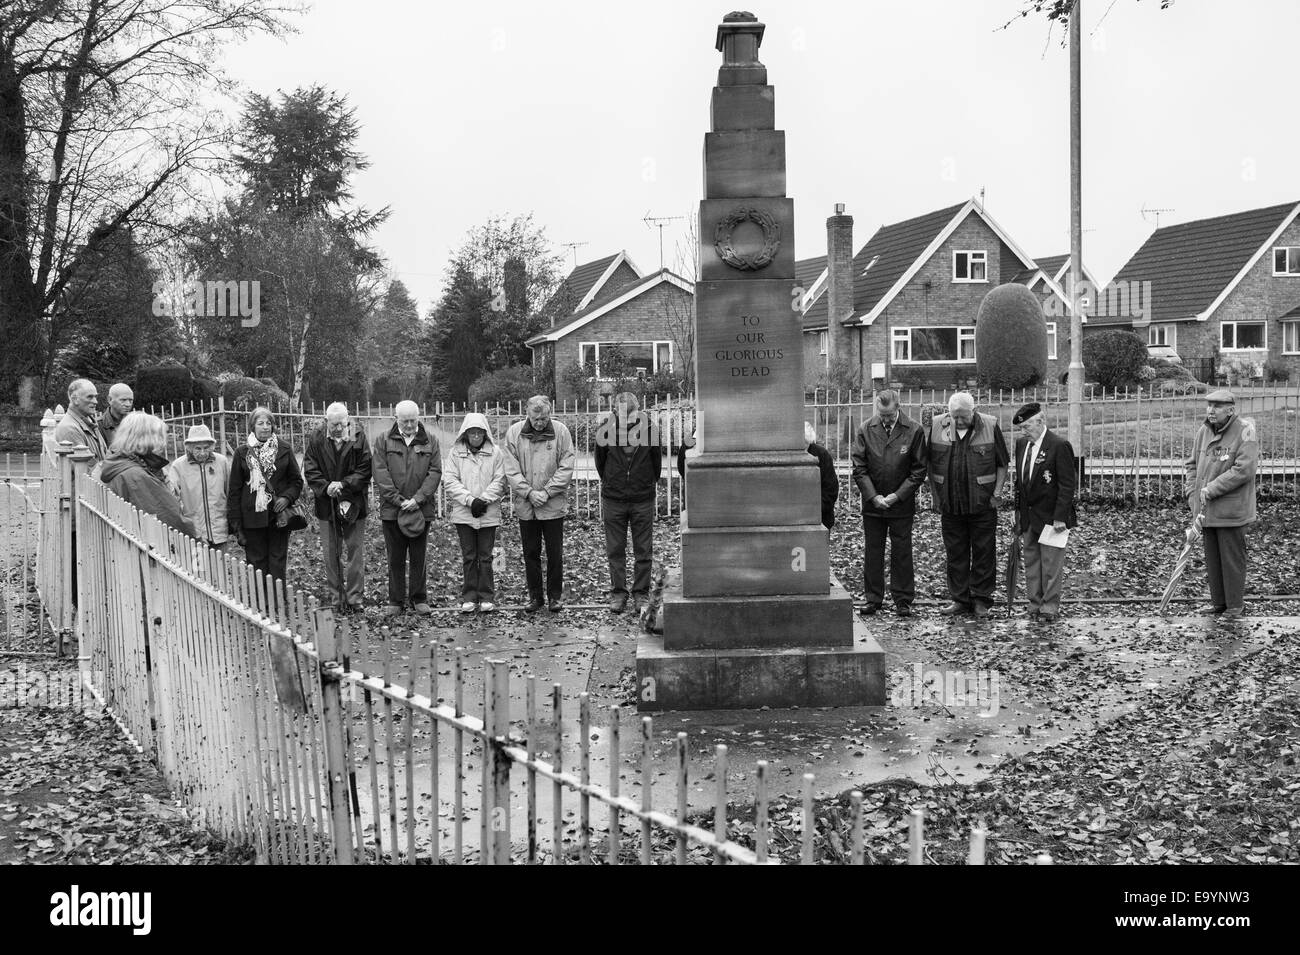 Armistice Day 11/11/11. A small group of old soldiers and their families gather at the war memorial in Presteigne, - Stock Image